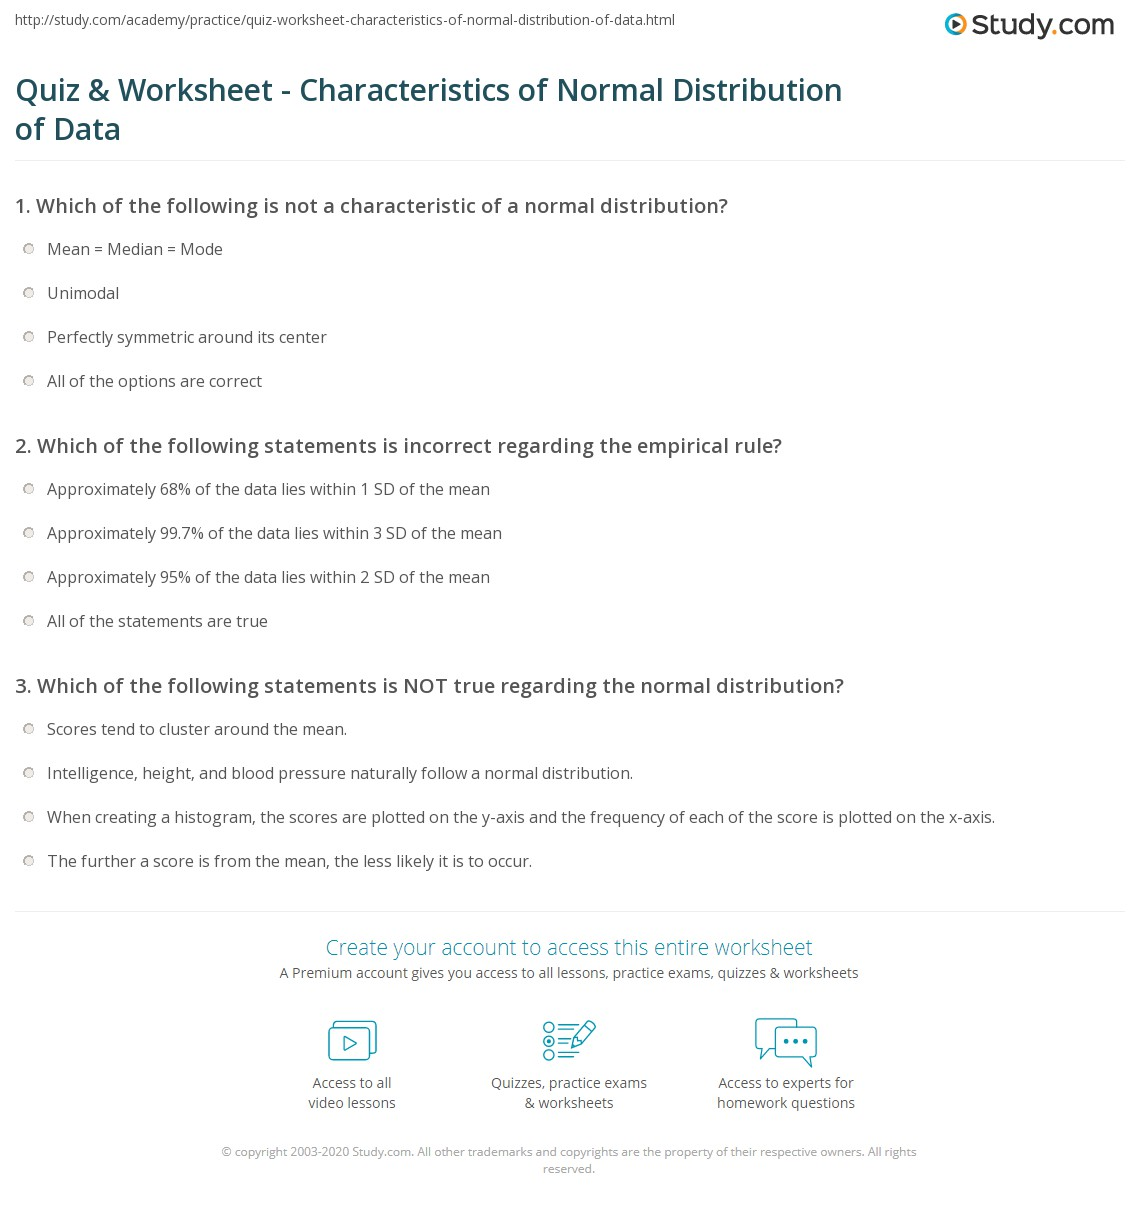 Worksheets Empirical Rule Worksheet quiz worksheet characteristics of normal distribution data which the following statements is incorrect regarding empirical rule